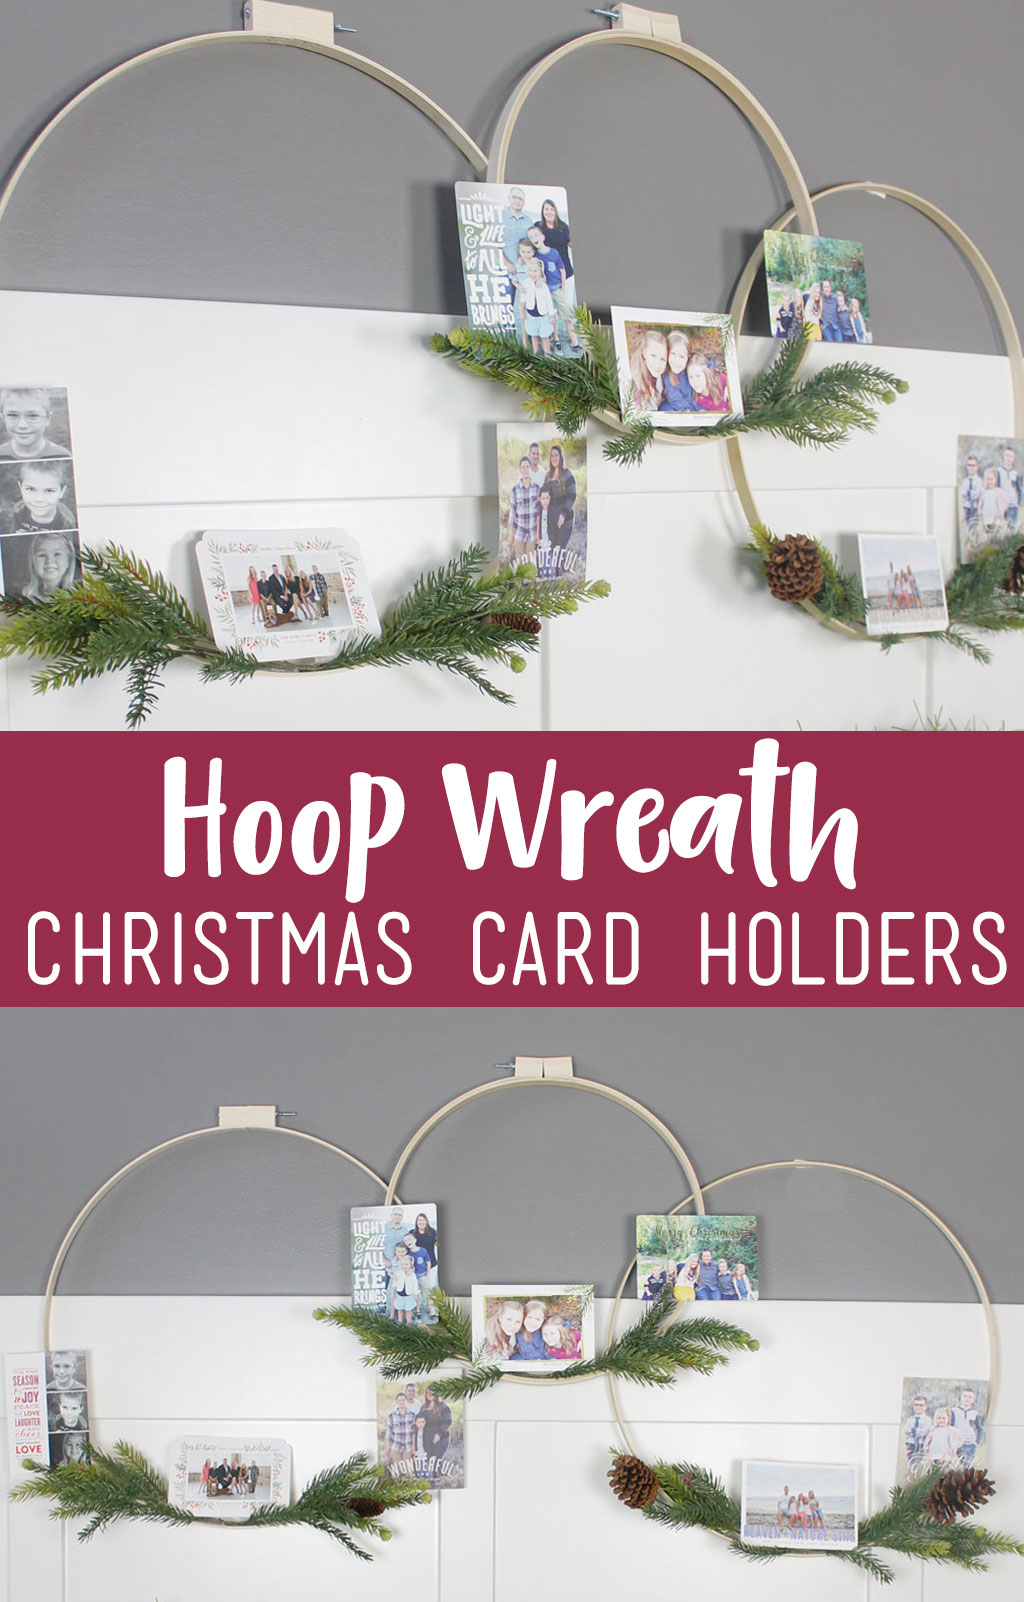 If you love displaying your holiday cards, you are going to love making these Hoop Wreath Christmas Card Holders. They are perfect as home decor, but double to display your @Minted holiday cards. #hoopwreath #christmascarddisplay #chirstmascardholder #Mintedholiday #spons